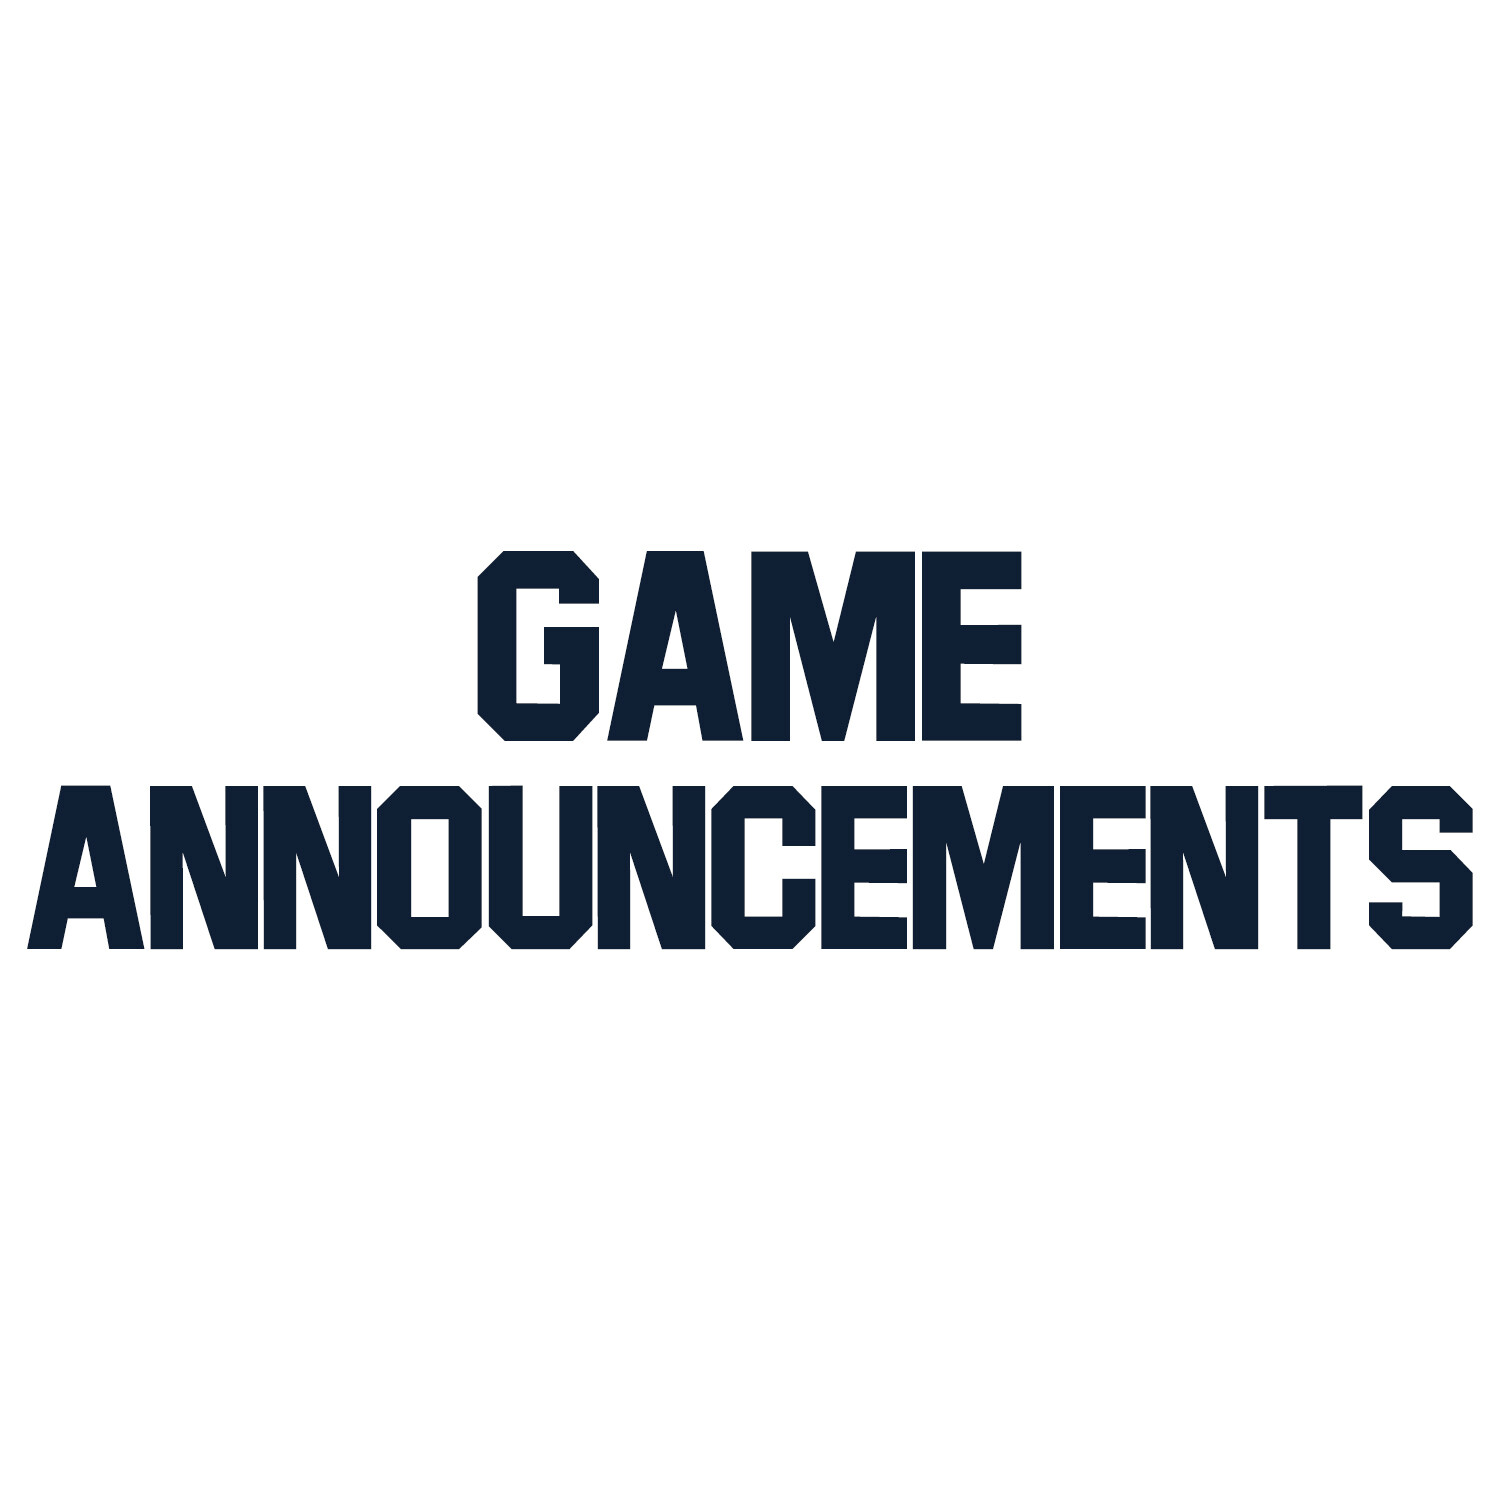 Game Announcements